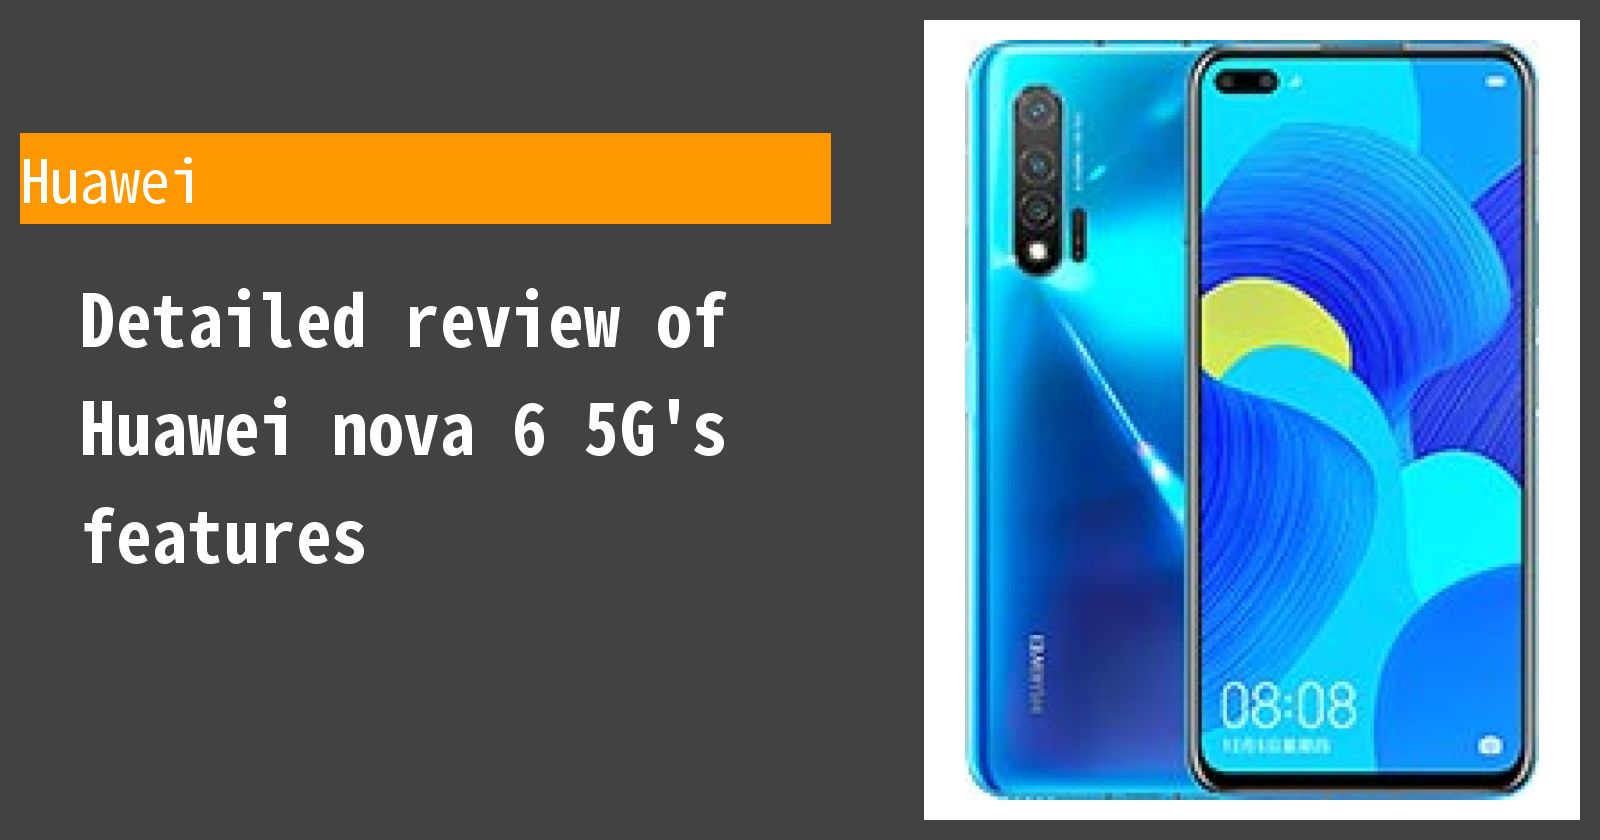 Detailed review of Huawei nova 6 5G's features